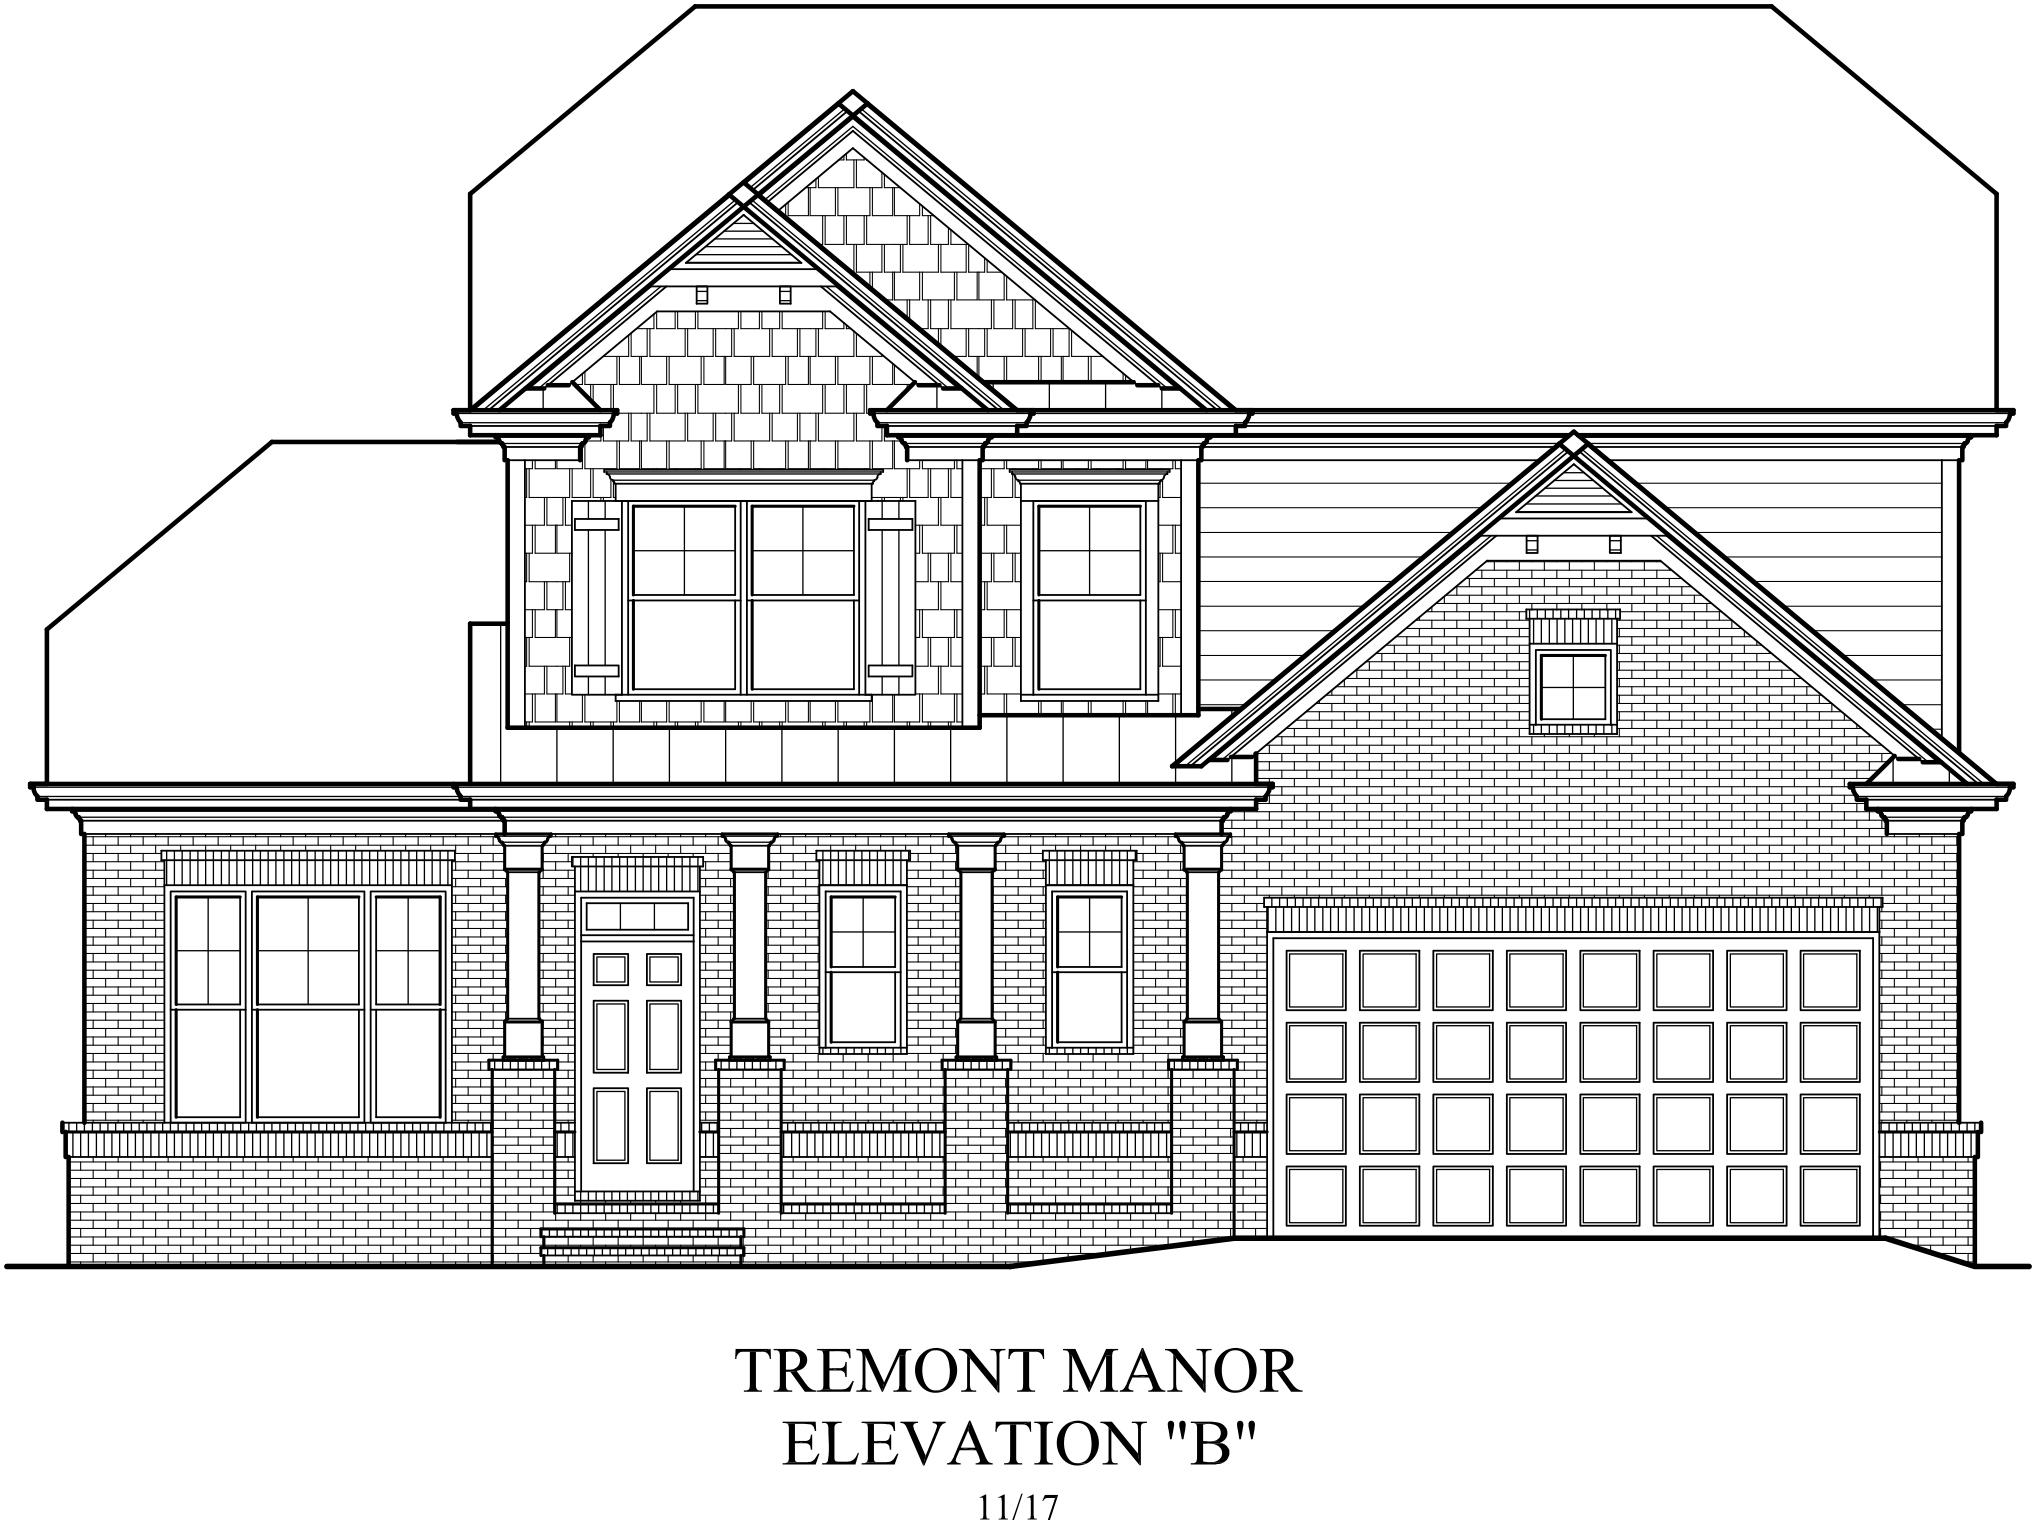 Tremont Manor